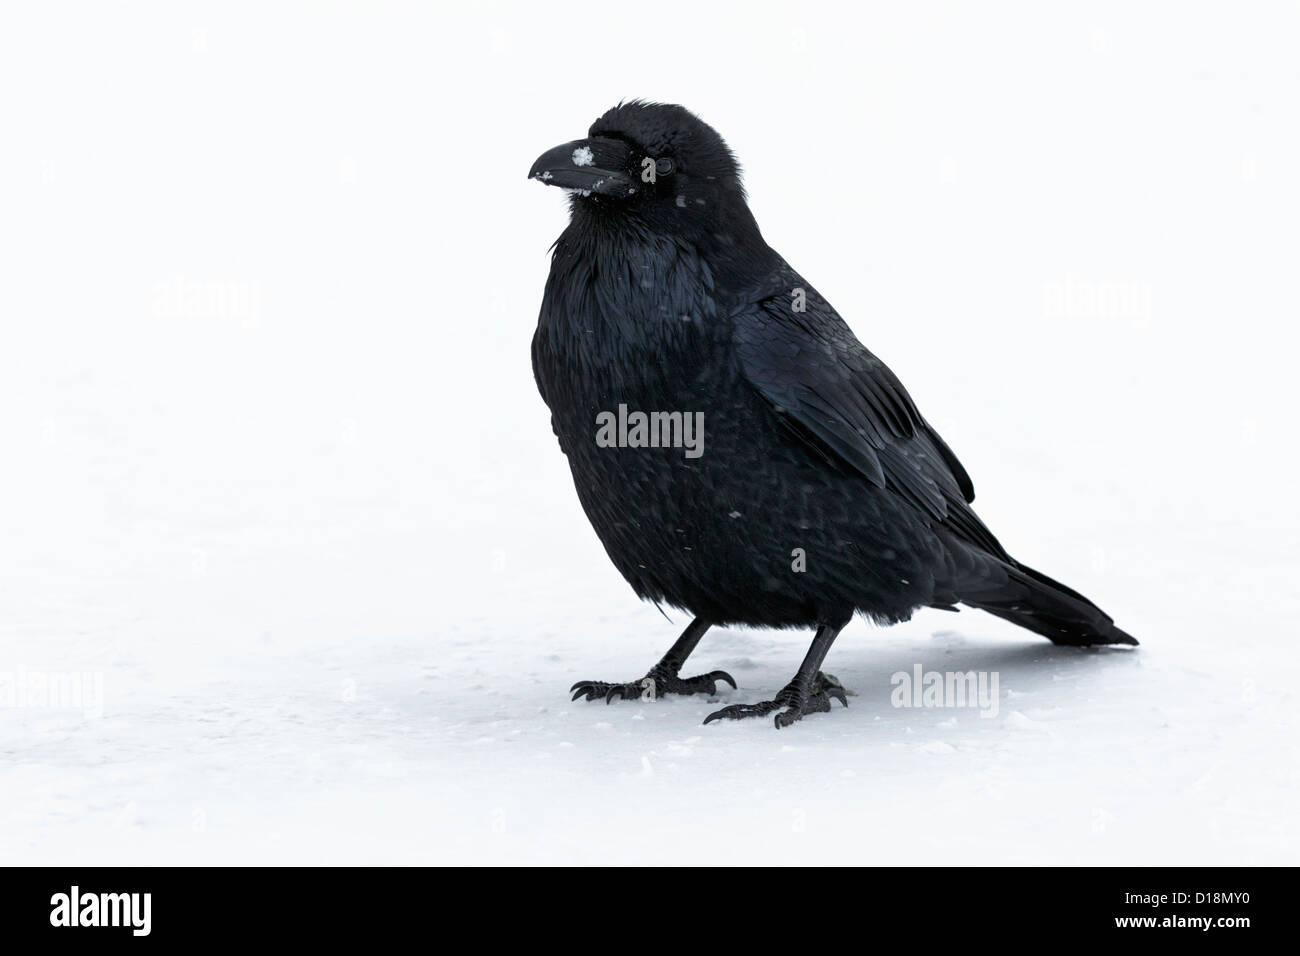 Raven in snow storm at the Columbia icefields - Jasper national park - Stock Image